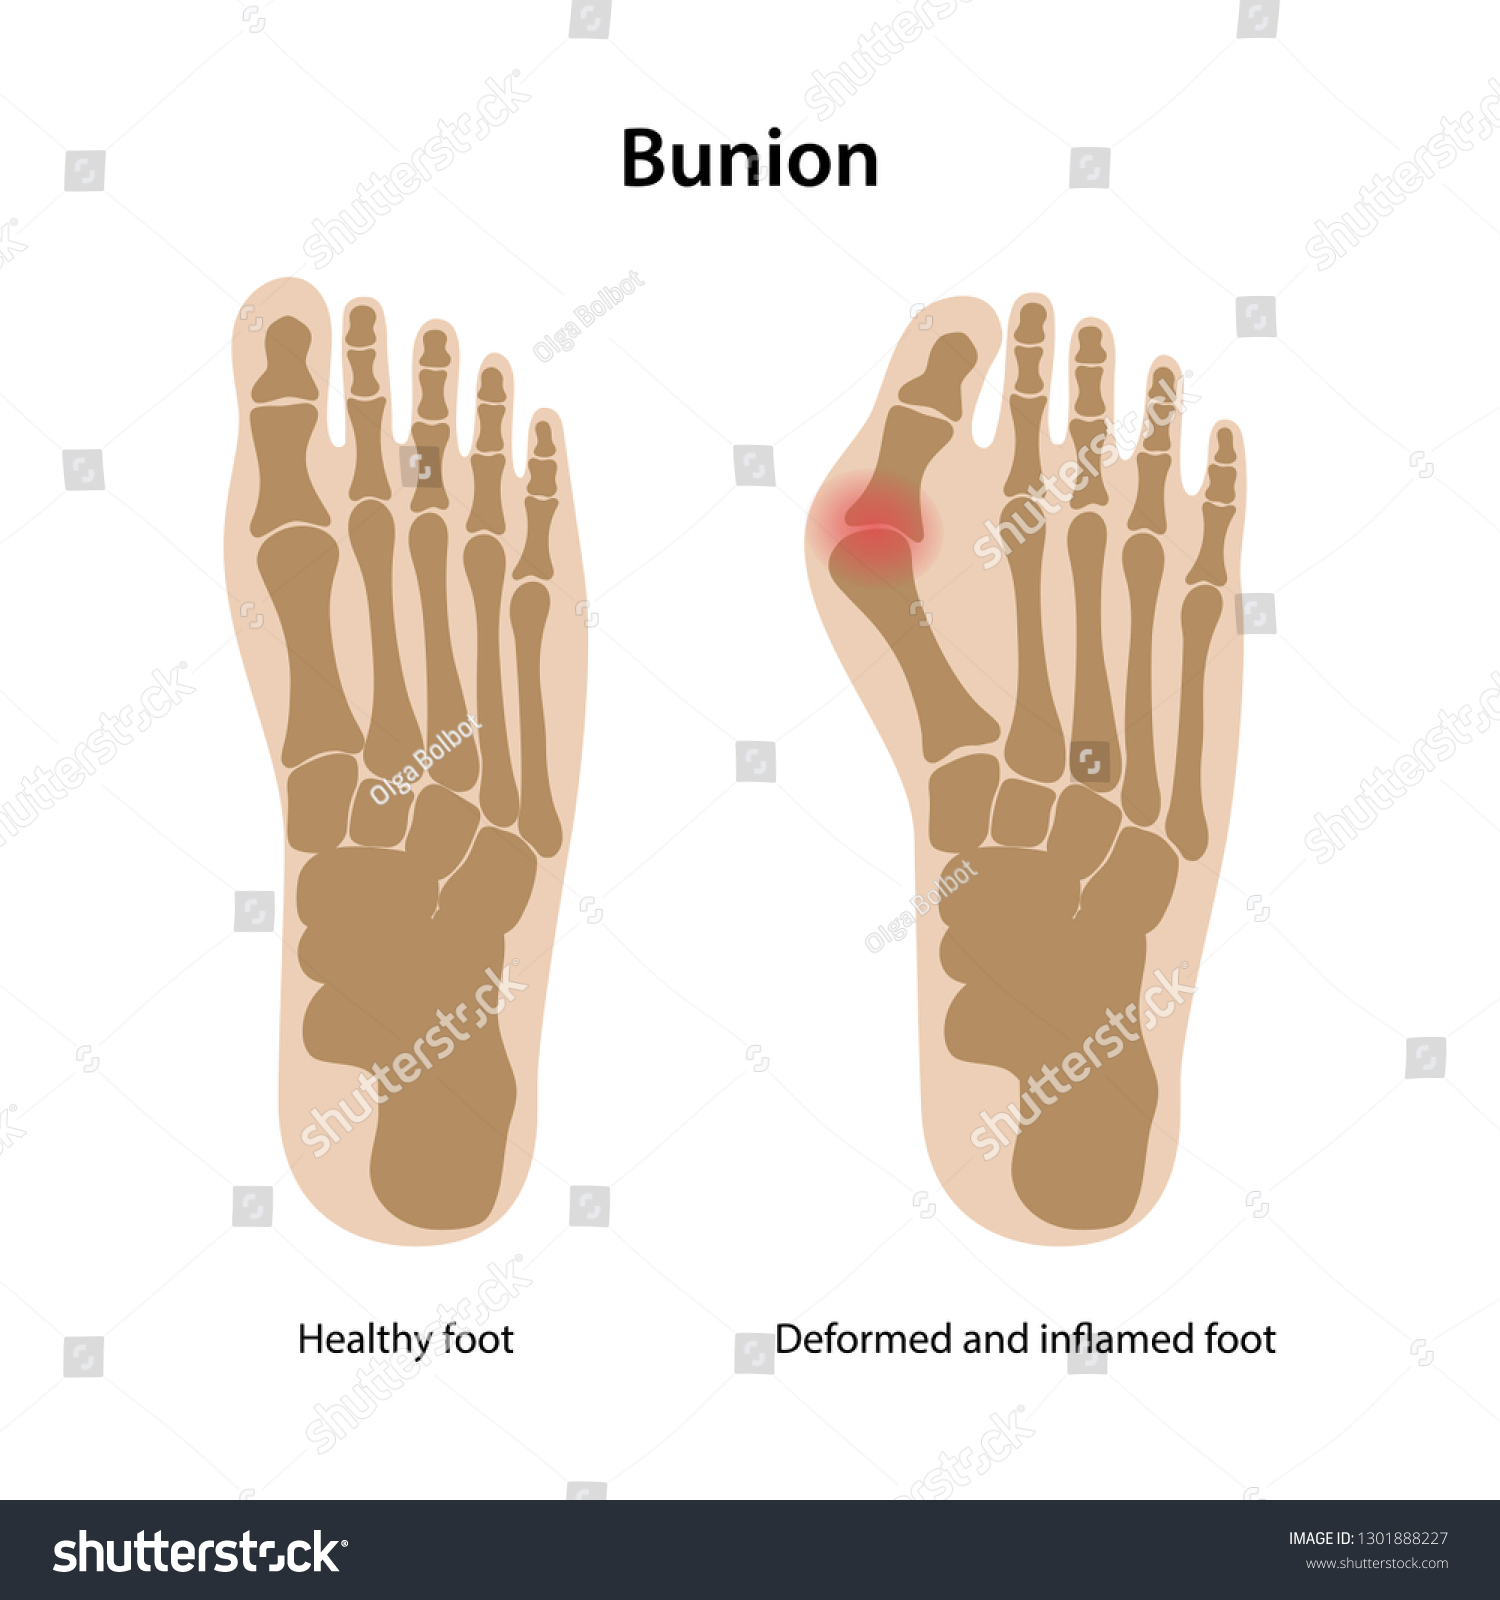 hight resolution of bunion healthy foot and deformed and inflamed foot from above view vector illustration